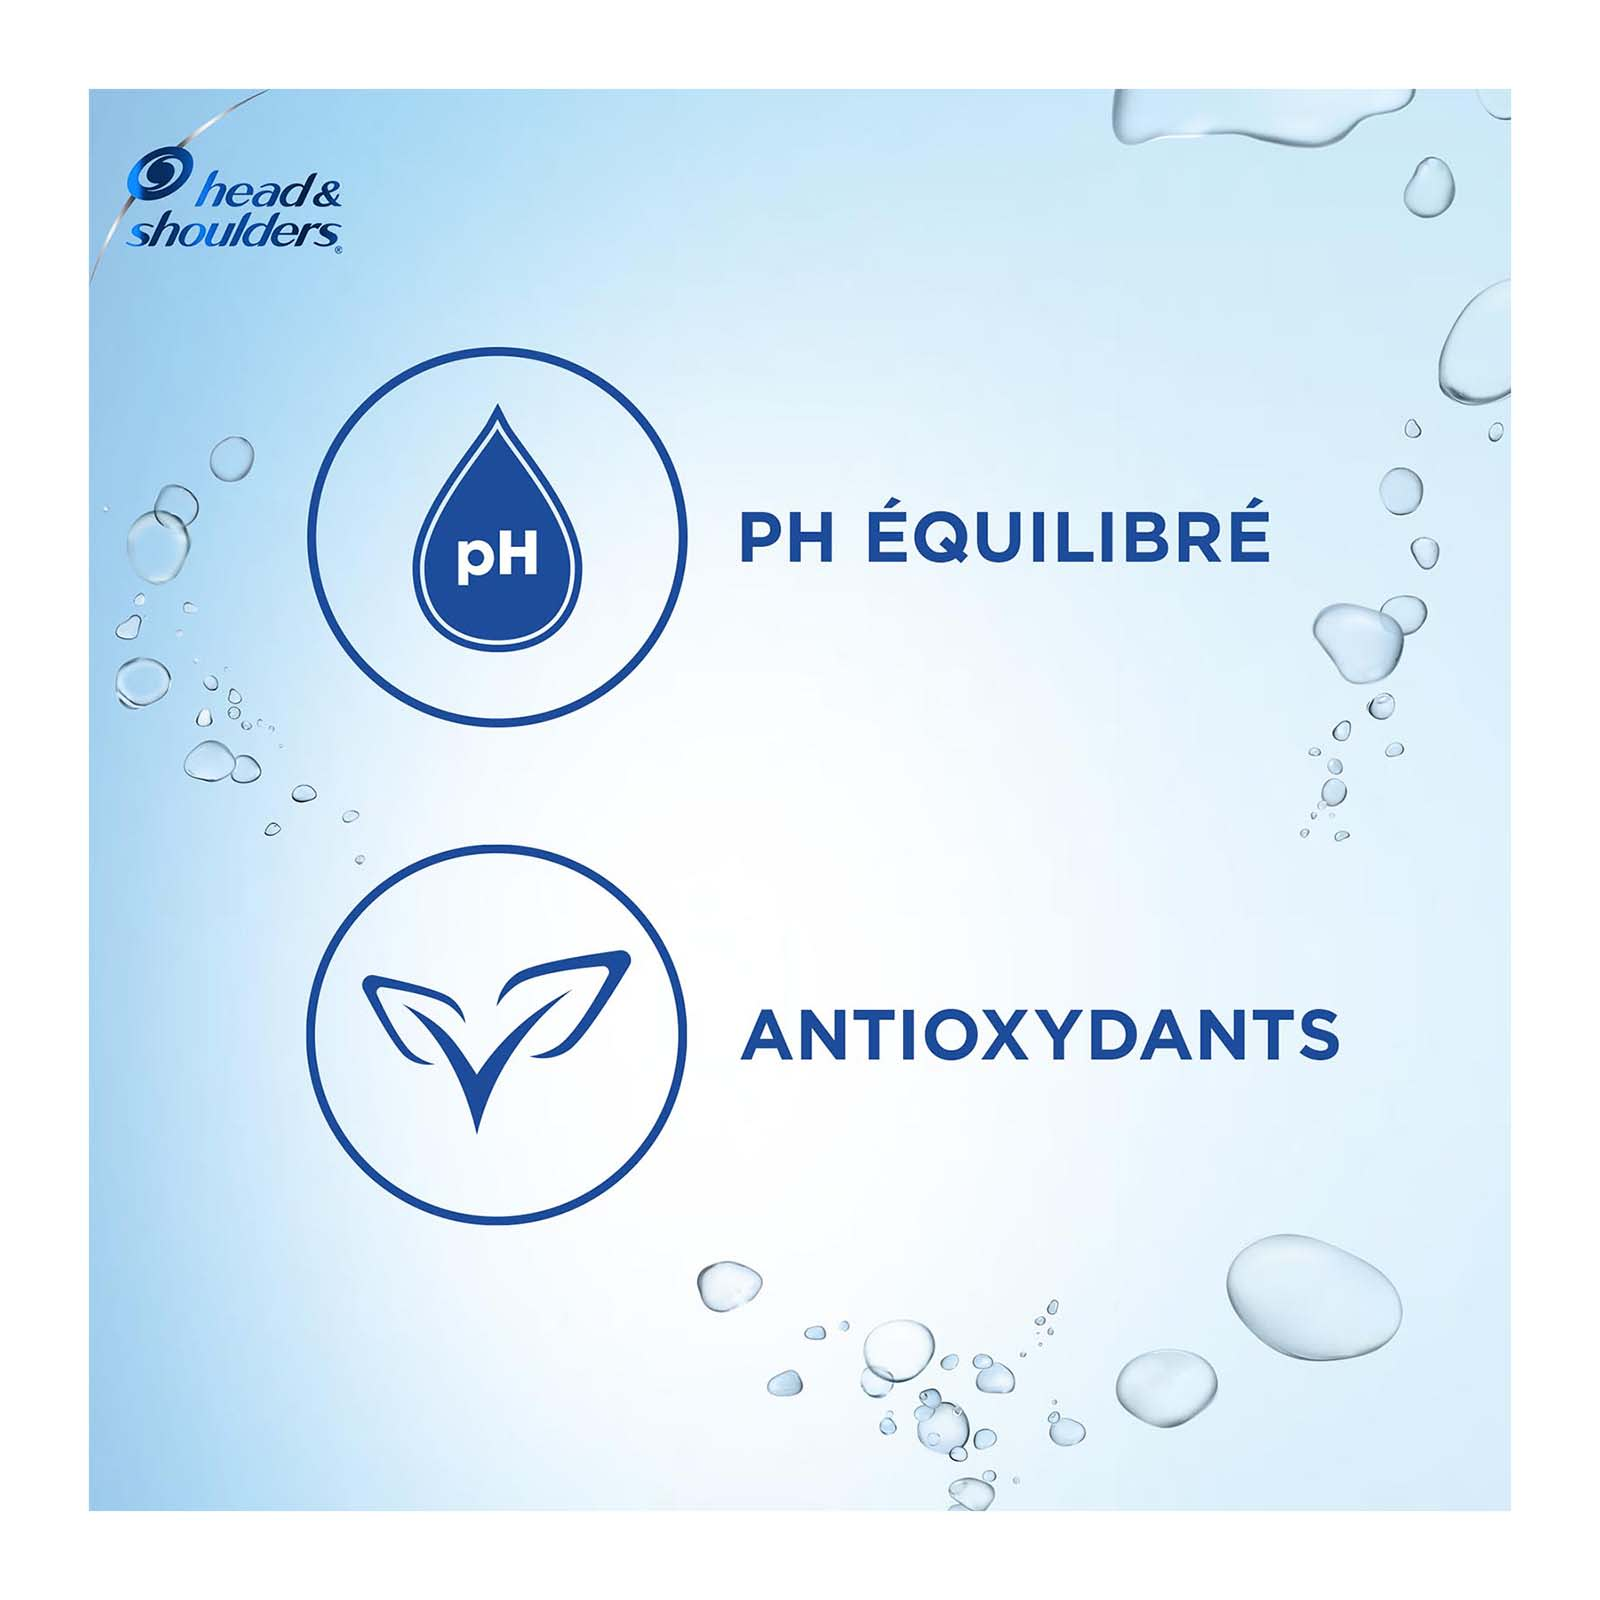 PH Équilibré, Antioxydants